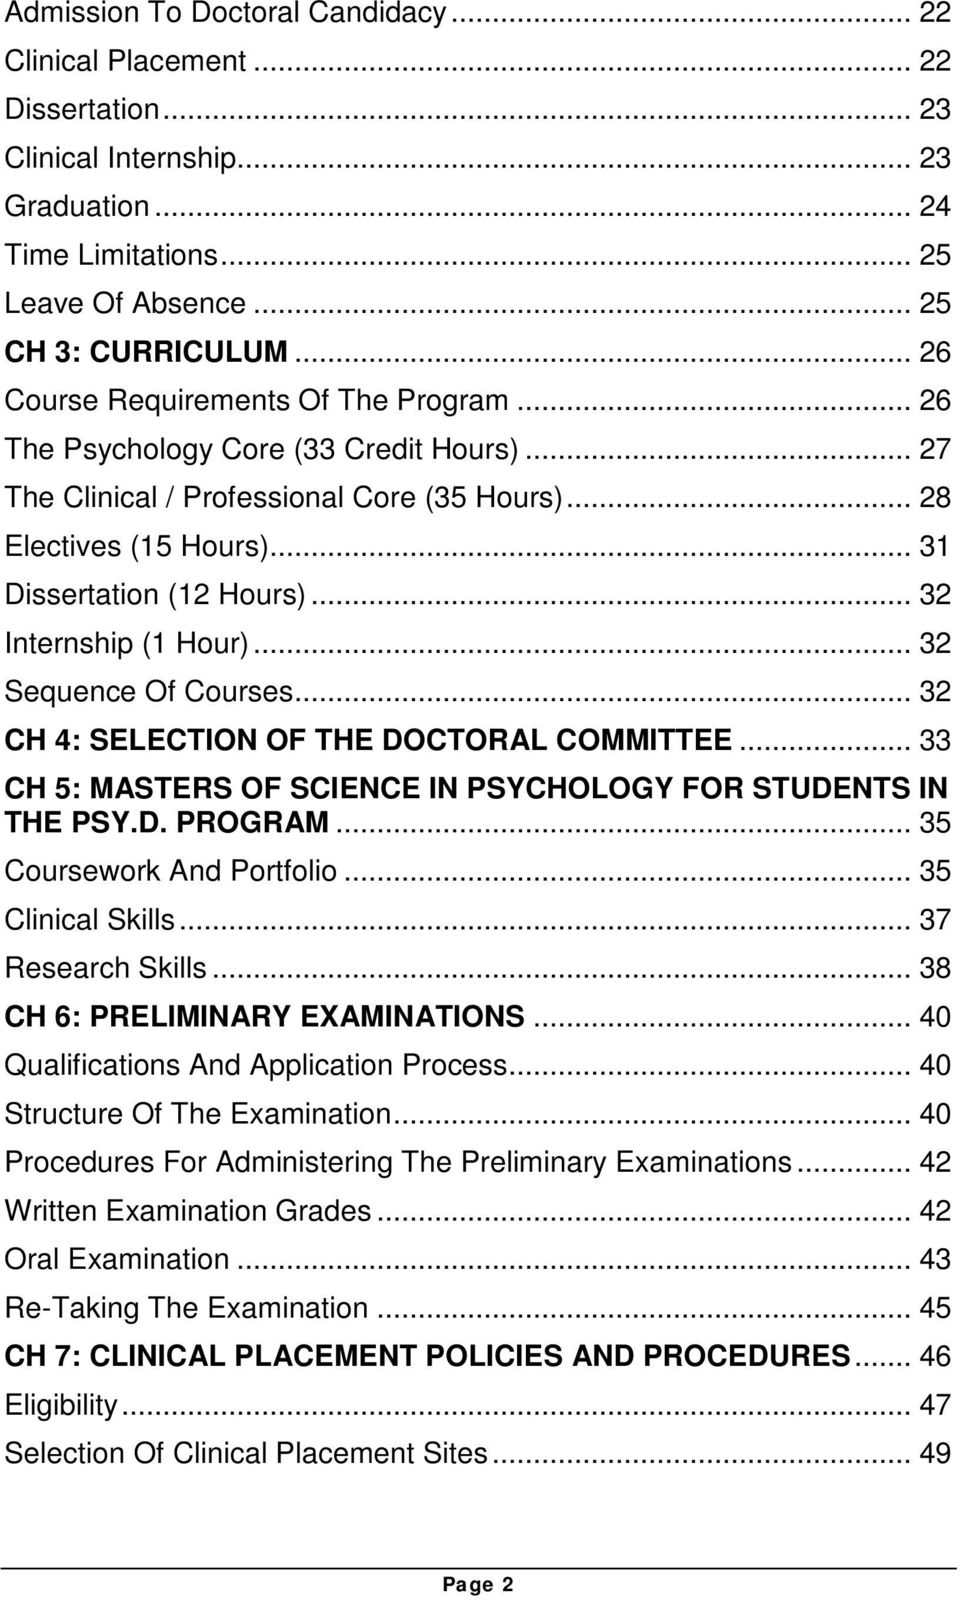 .. 32 Internship (1 Hour)... 32 Sequence Of Courses... 32 CH 4: SELECTION OF THE DOCTORAL COMMITTEE... 33 CH 5: MASTERS OF SCIENCE IN PSYCHOLOGY FOR STUDENTS IN THE PSY.D. PROGRAM.